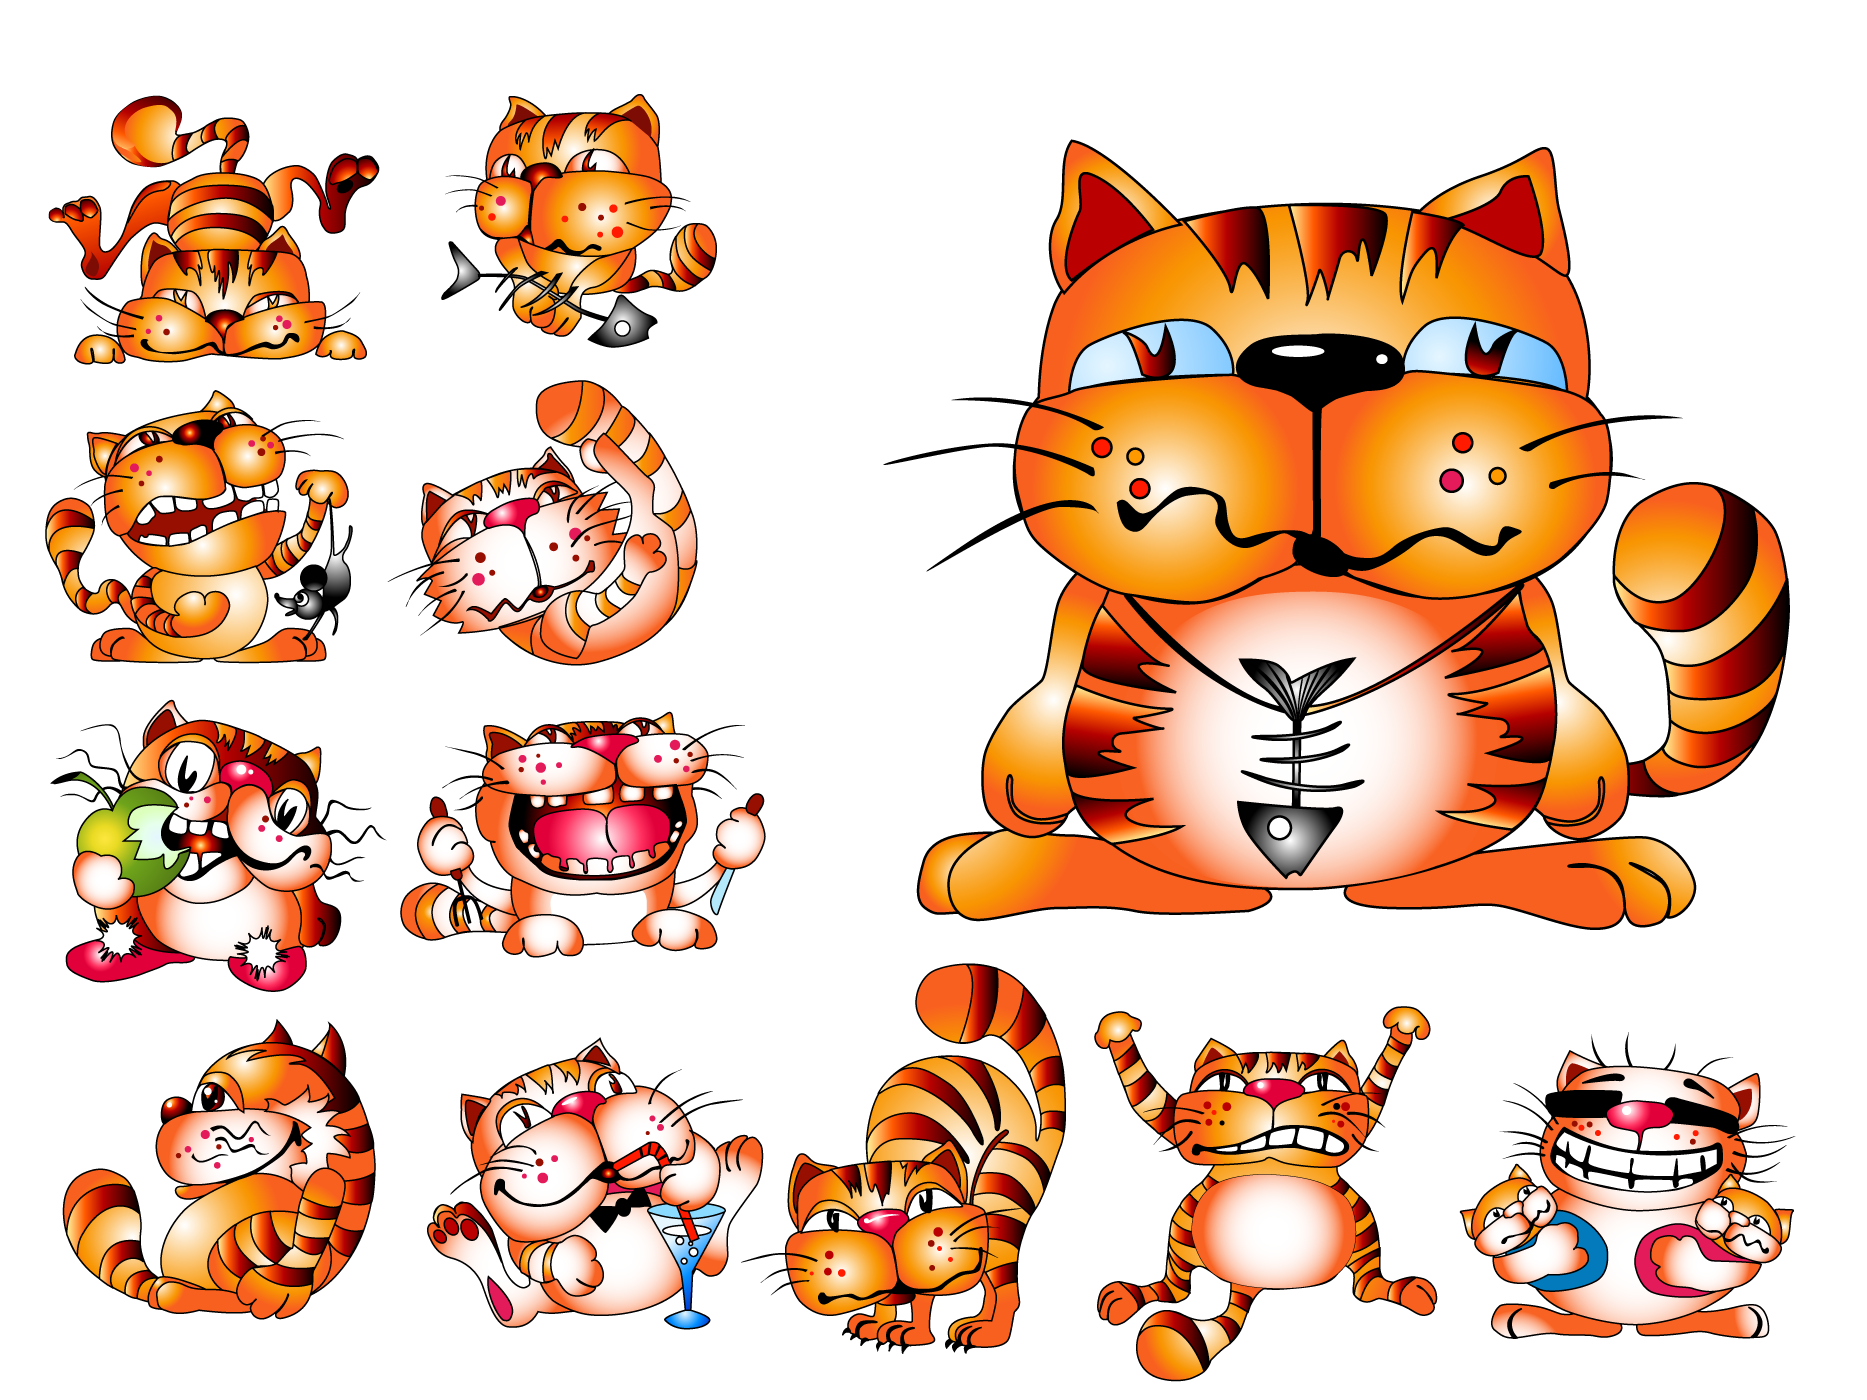 Laurel burch cat clipart images png black and white library 0_82333_ffe1b0a8_orig (1867×1400) | Cat's | Pinterest png black and white library